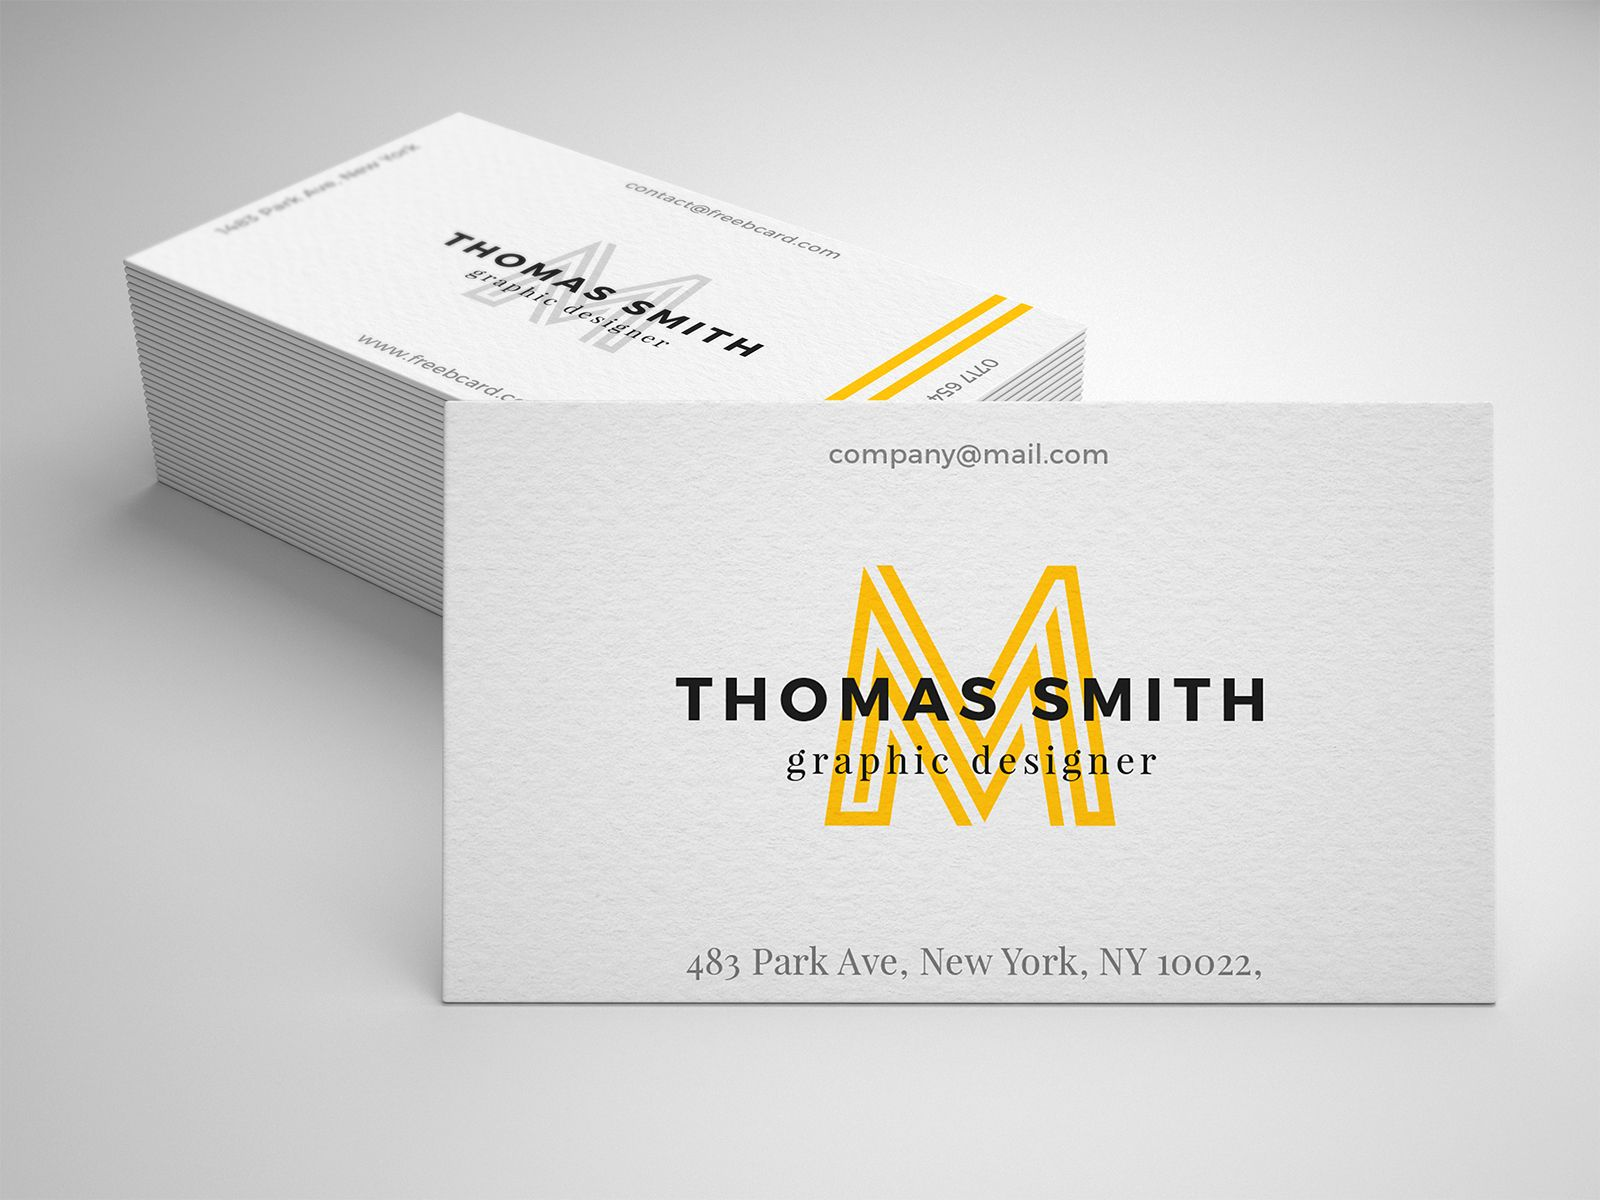 Realistic Business Card Mockup Free PSD in 2020 Business